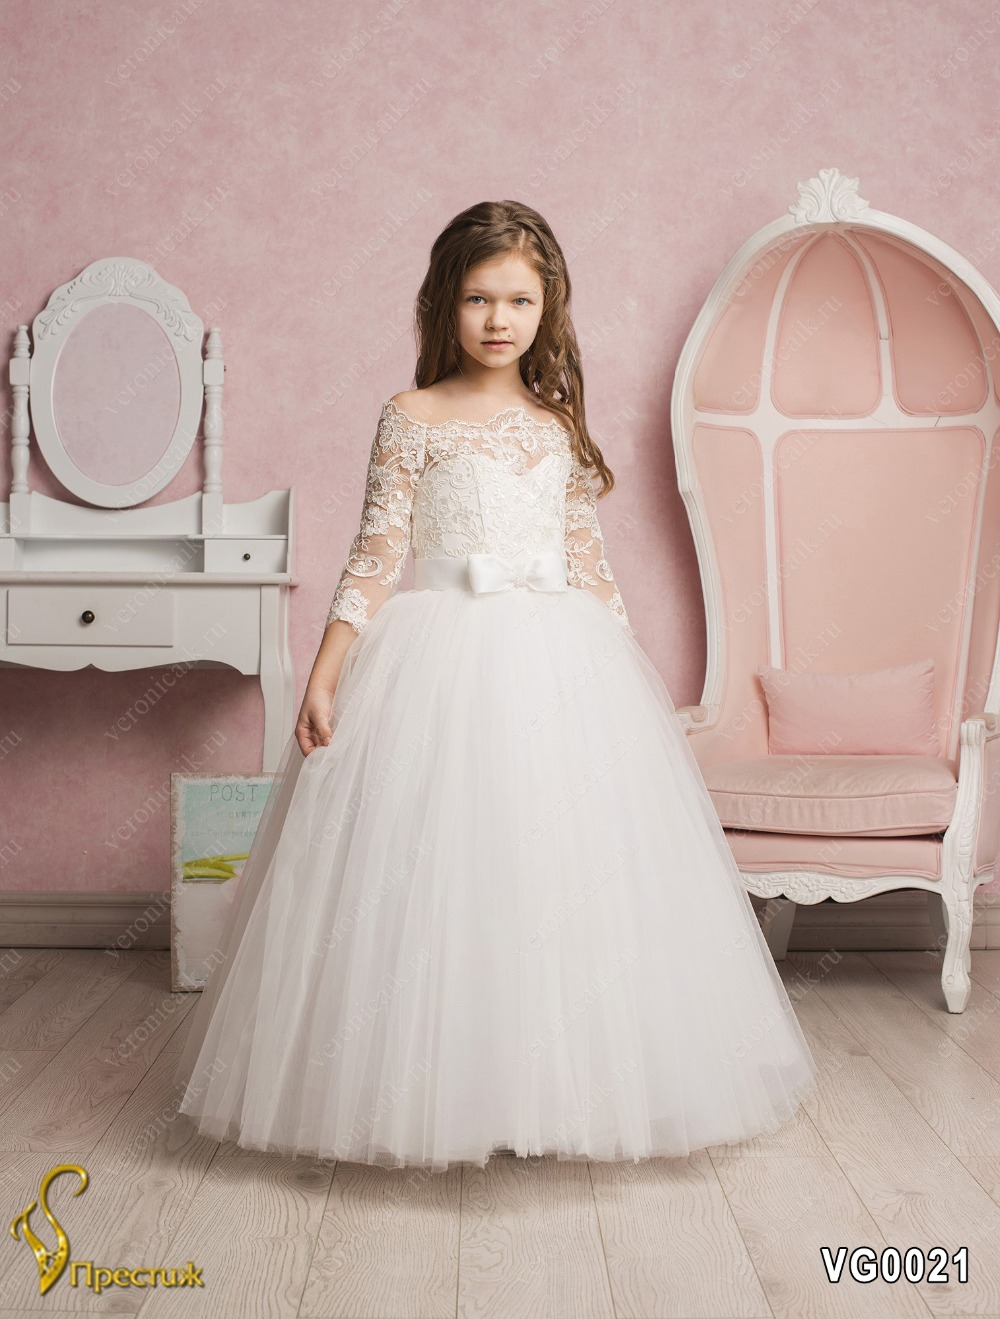 Beautiful Lace Embroidery Off Shoulder Girls Tulle Ball Gowns Three Quarter Sleeves Solid White Kid First Communion Dress 2-12 Y embroidery basis book 500 kinds of three dimensional embroidery patterns